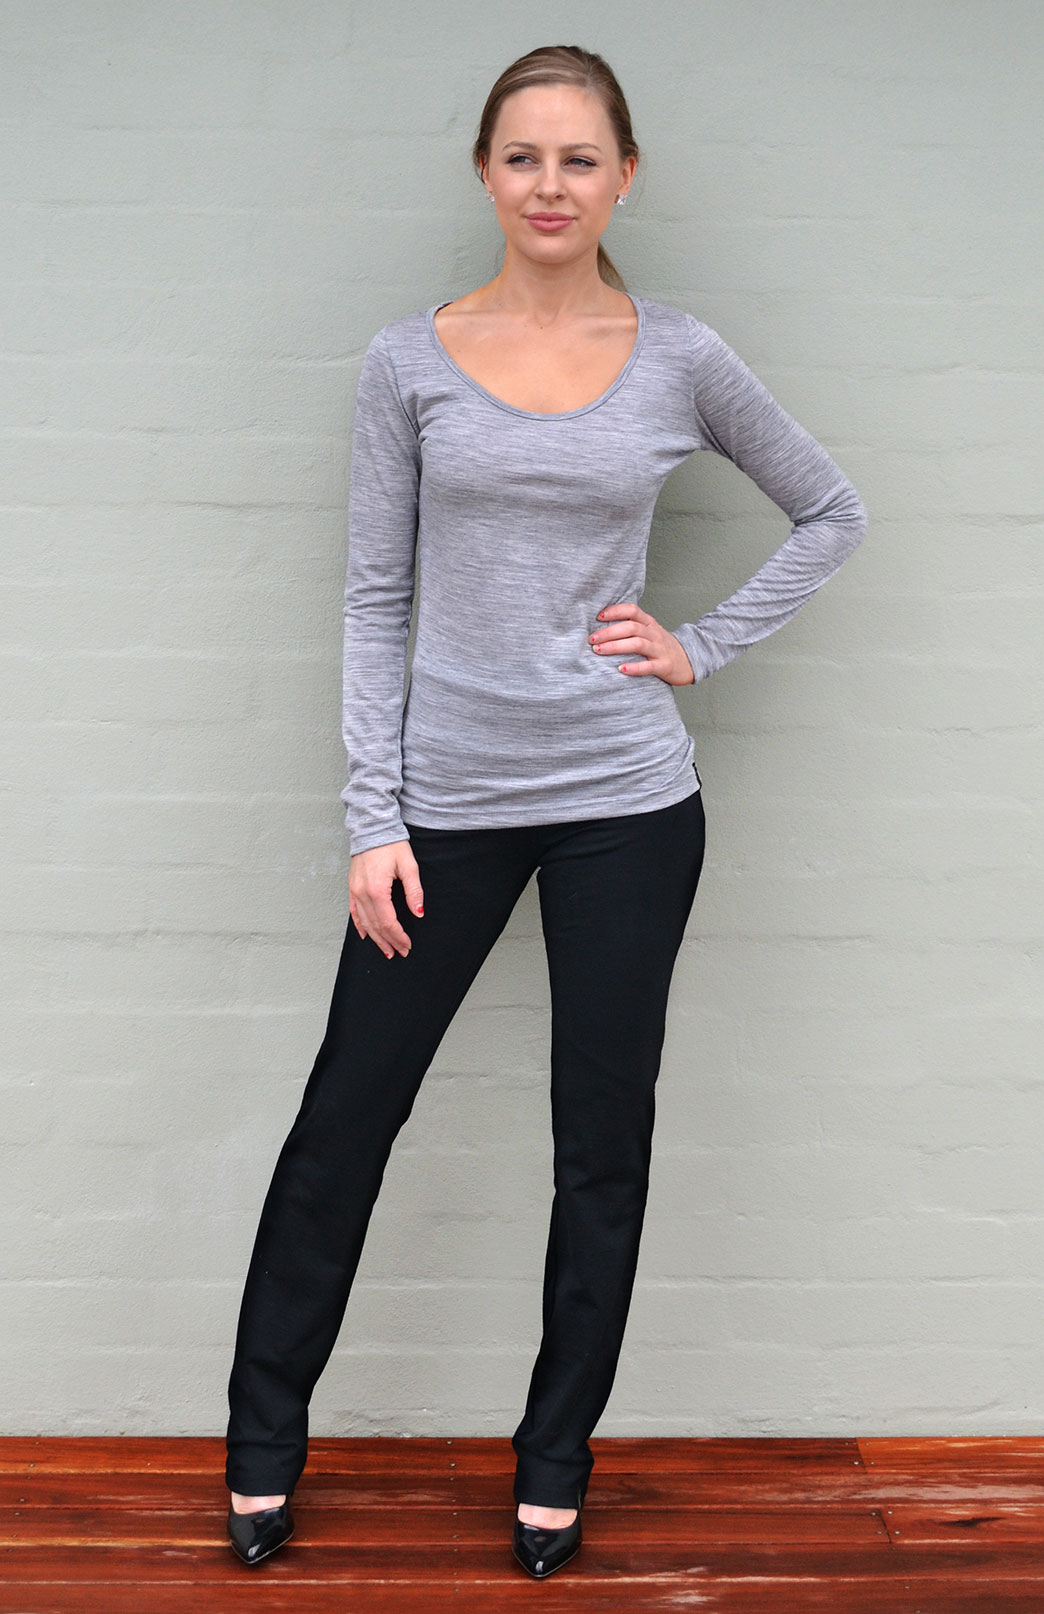 Straight Leg Pants - Lightweight - Women's Black Lightweight Wool Straight Leg Pants with wide waistband - Smitten Merino Tasmania Australia